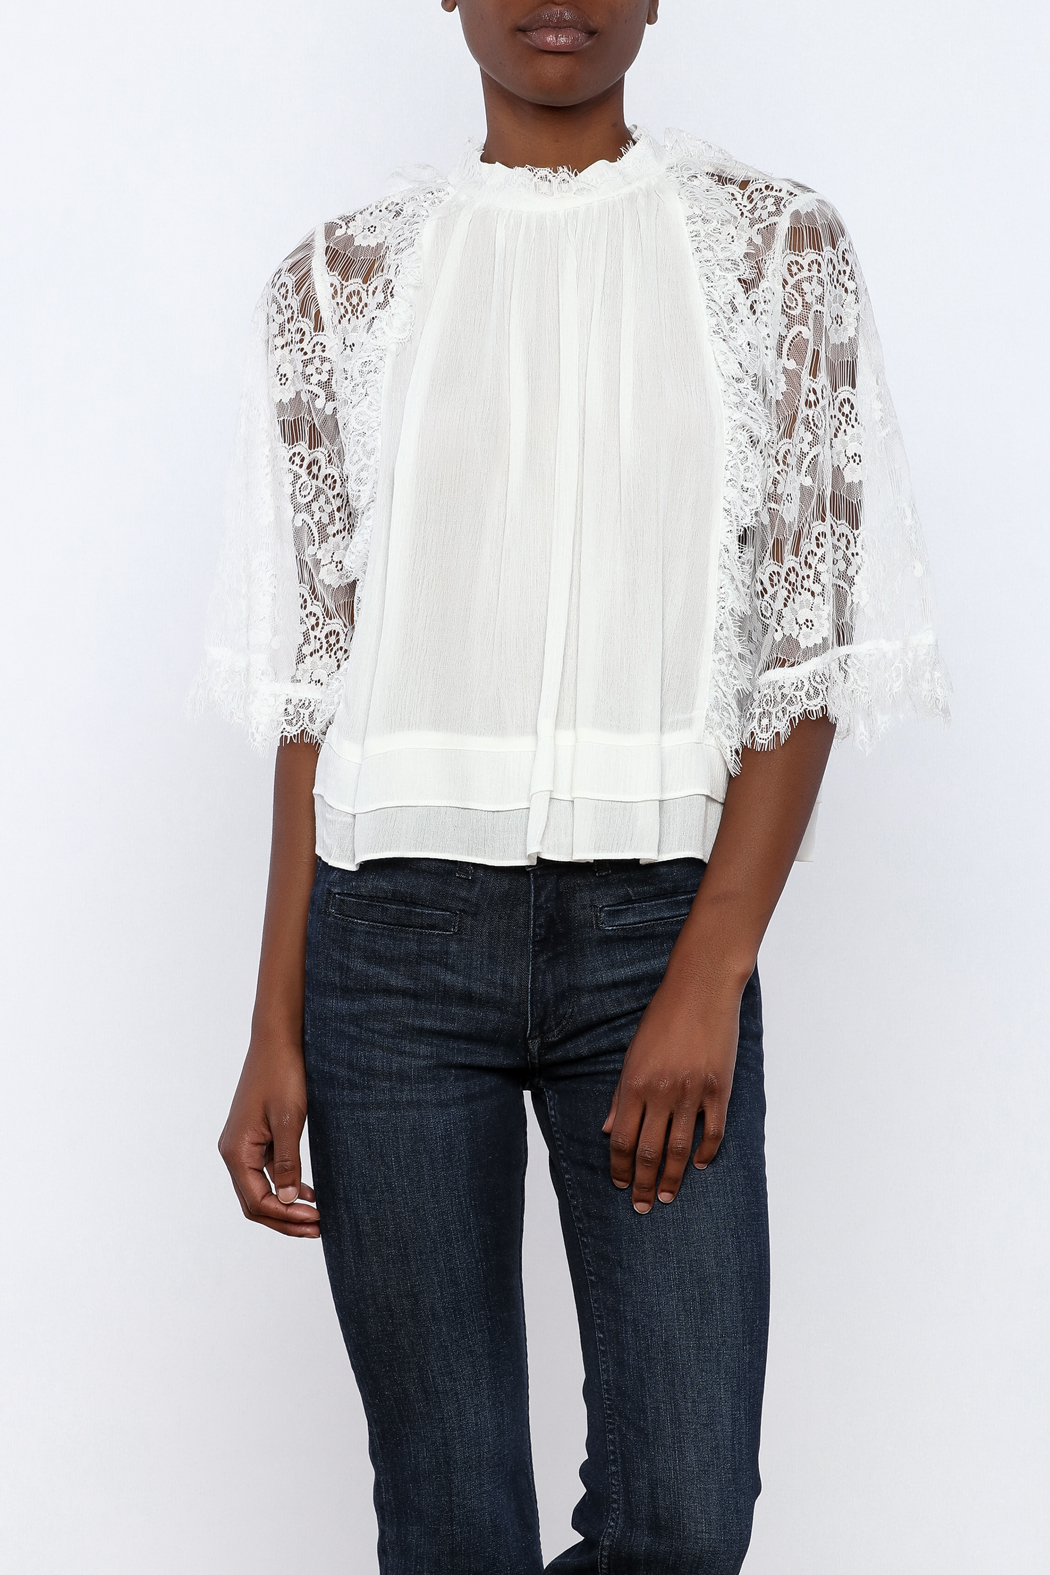 beulah Lace Sleeve Top - Main Image